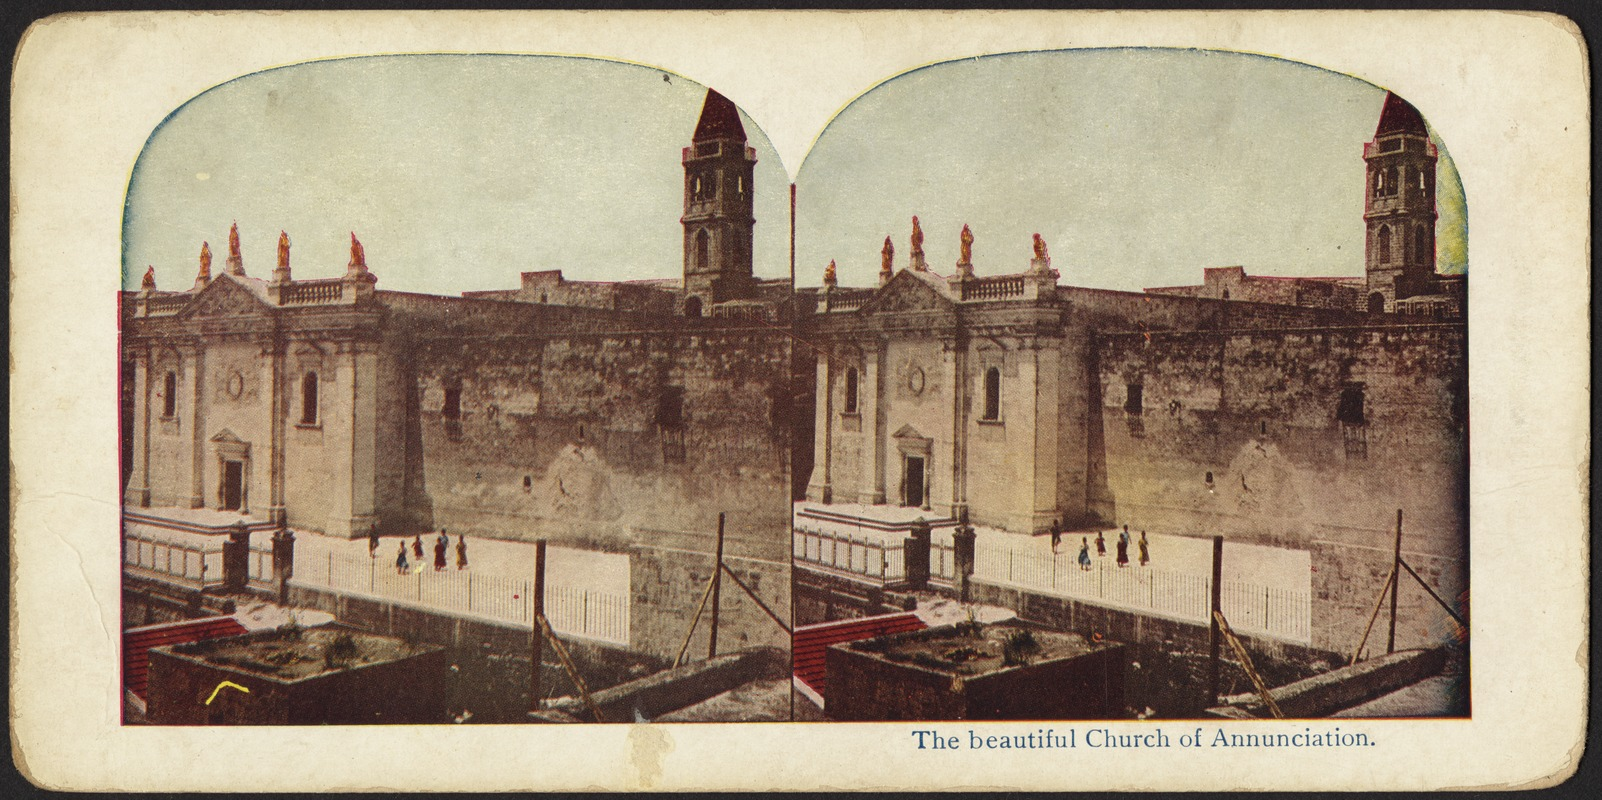 Church of the Annunciation, Nazareth, Palestine